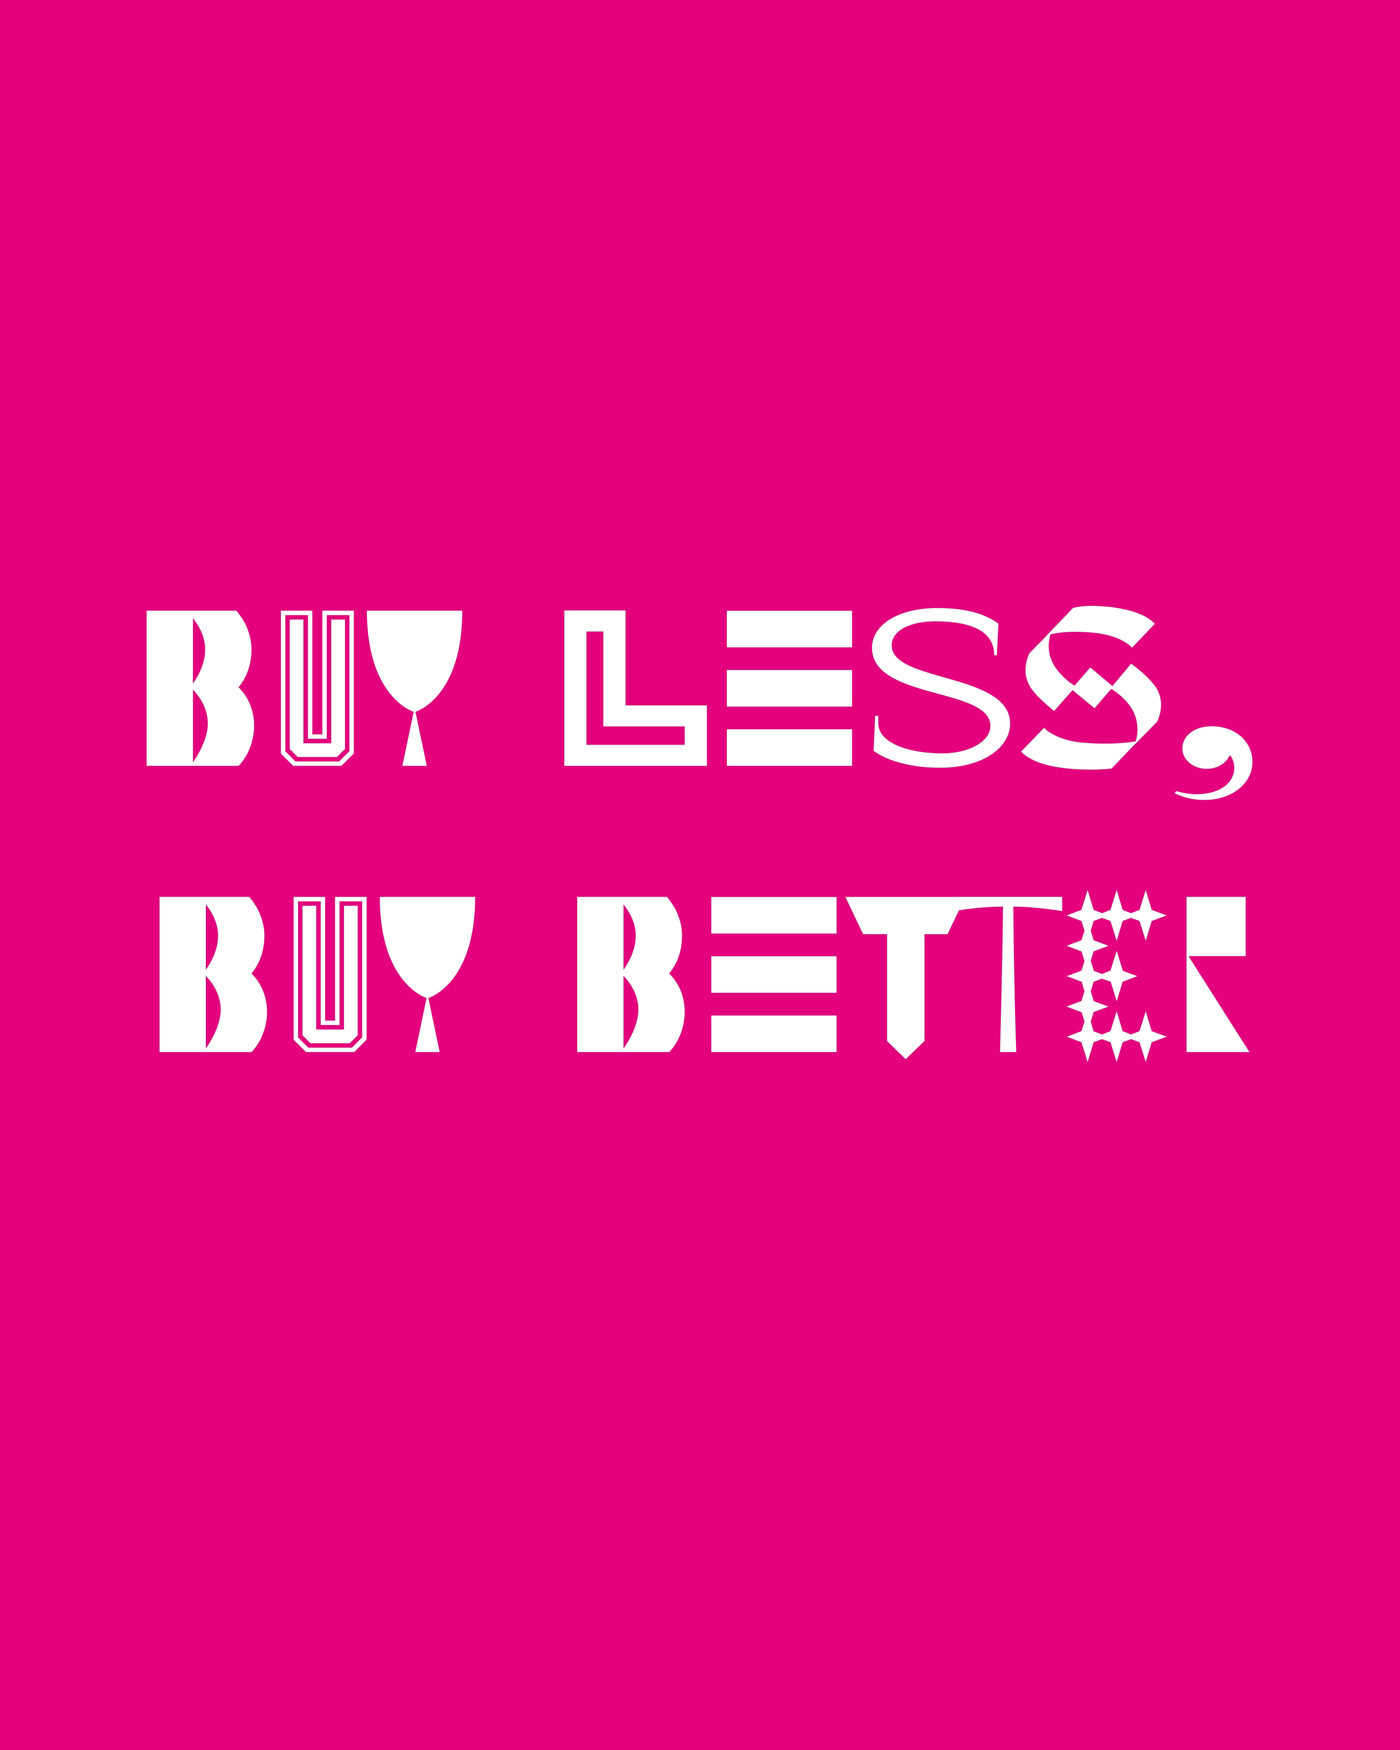 Buyless buy better allabout magazine